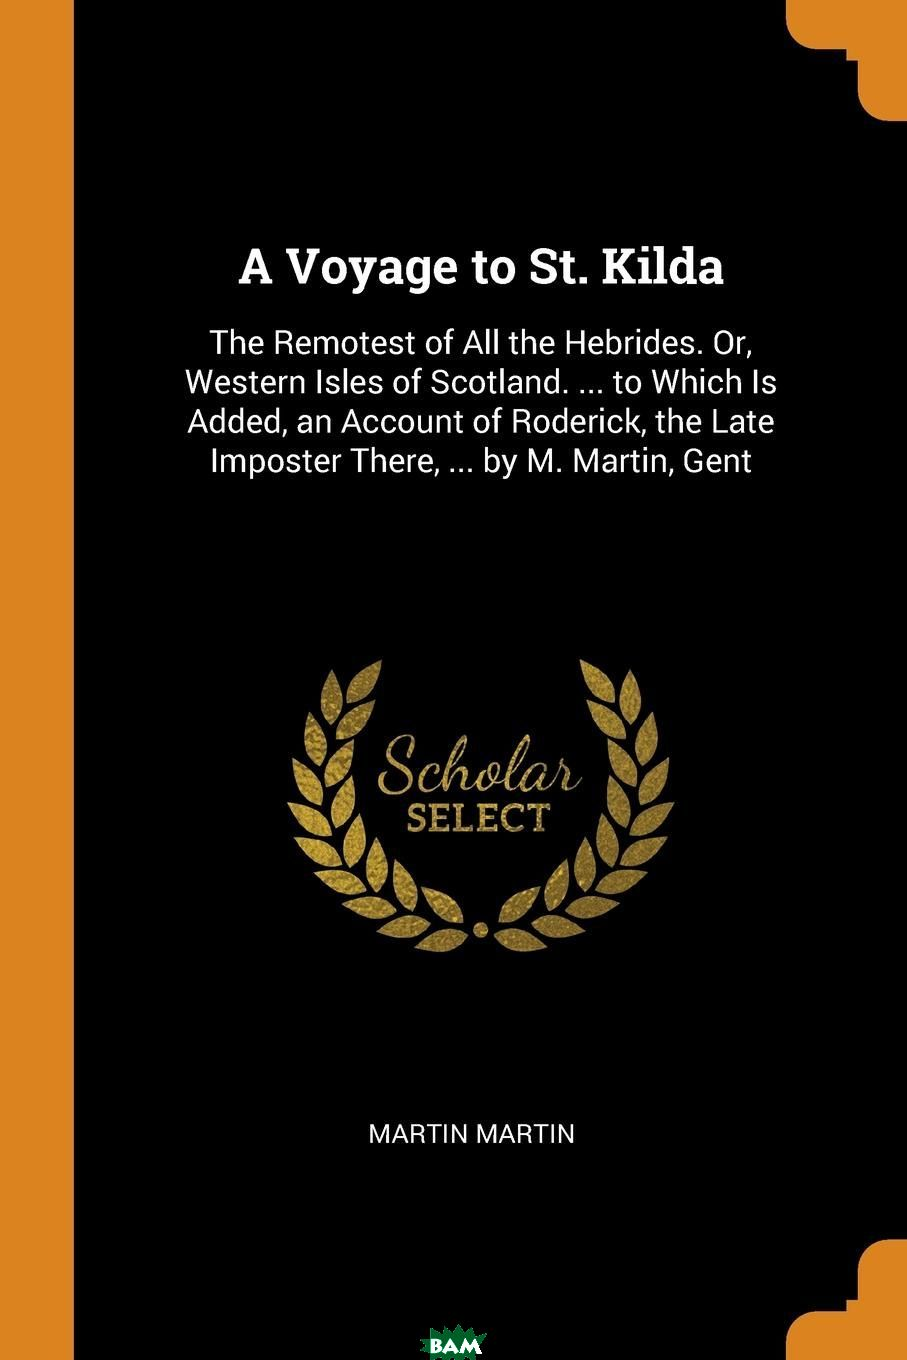 Купить A Voyage to St. Kilda. The Remotest of All the Hebrides. Or, Western Isles of Scotland. ... to Which Is Added, an Account of Roderick, the Late Imposter There, ... by M. Martin, Gent, Martin Martin, 9780342179473